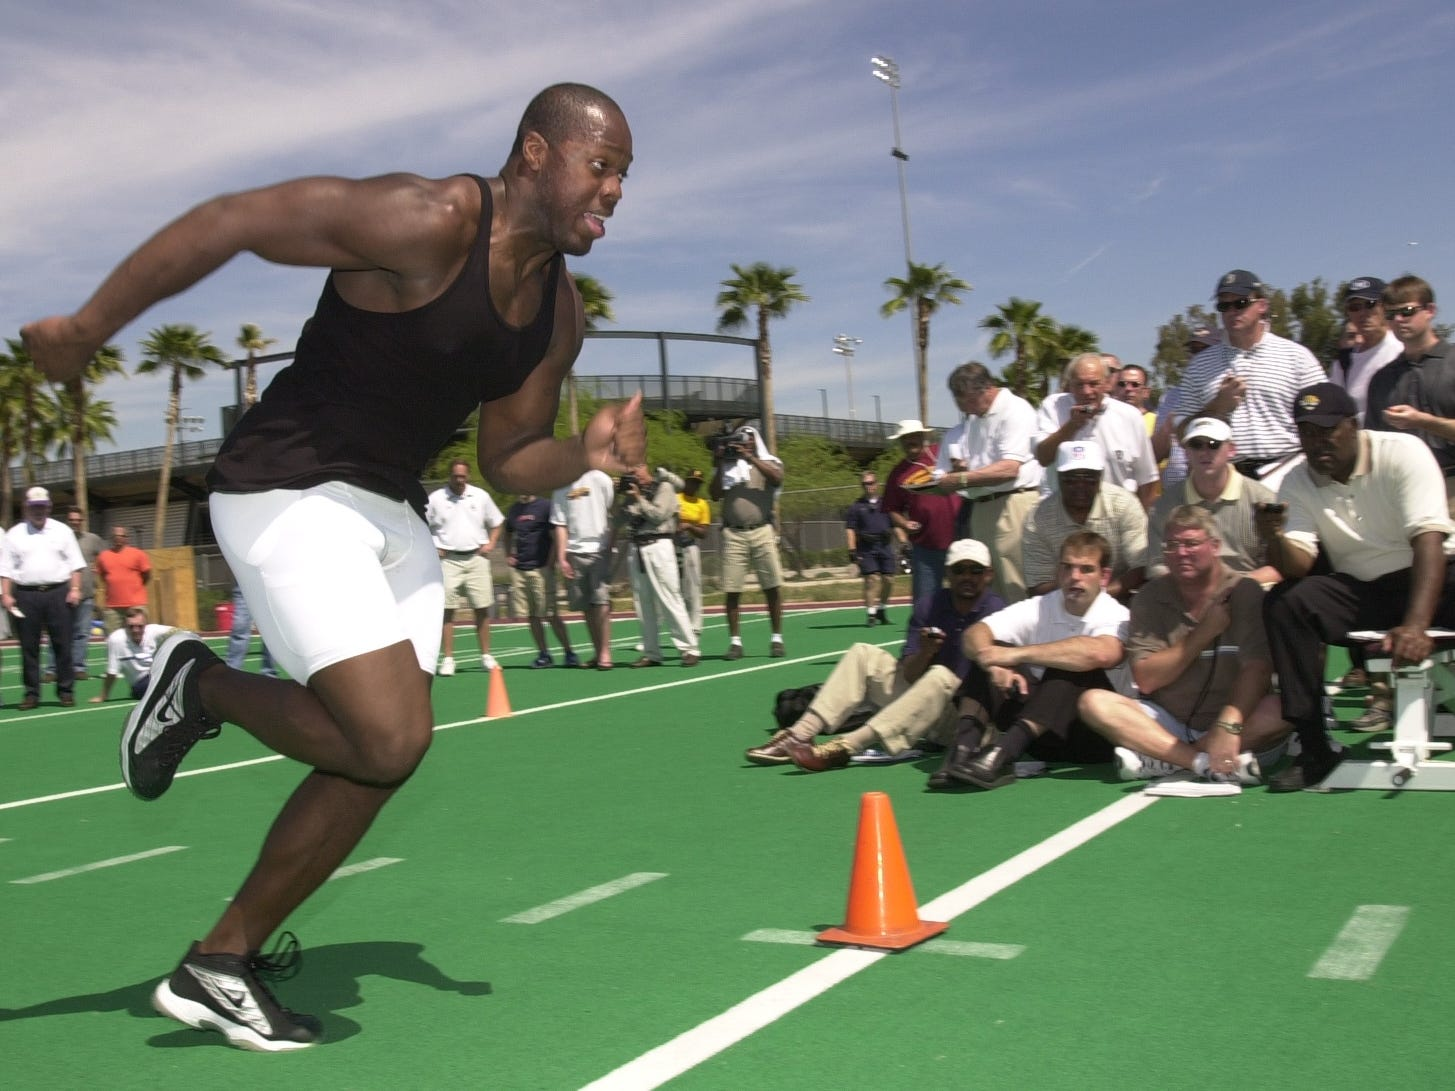 ASU's Terrell Suggs works out on campus for NFL scouts March 26, 2003.